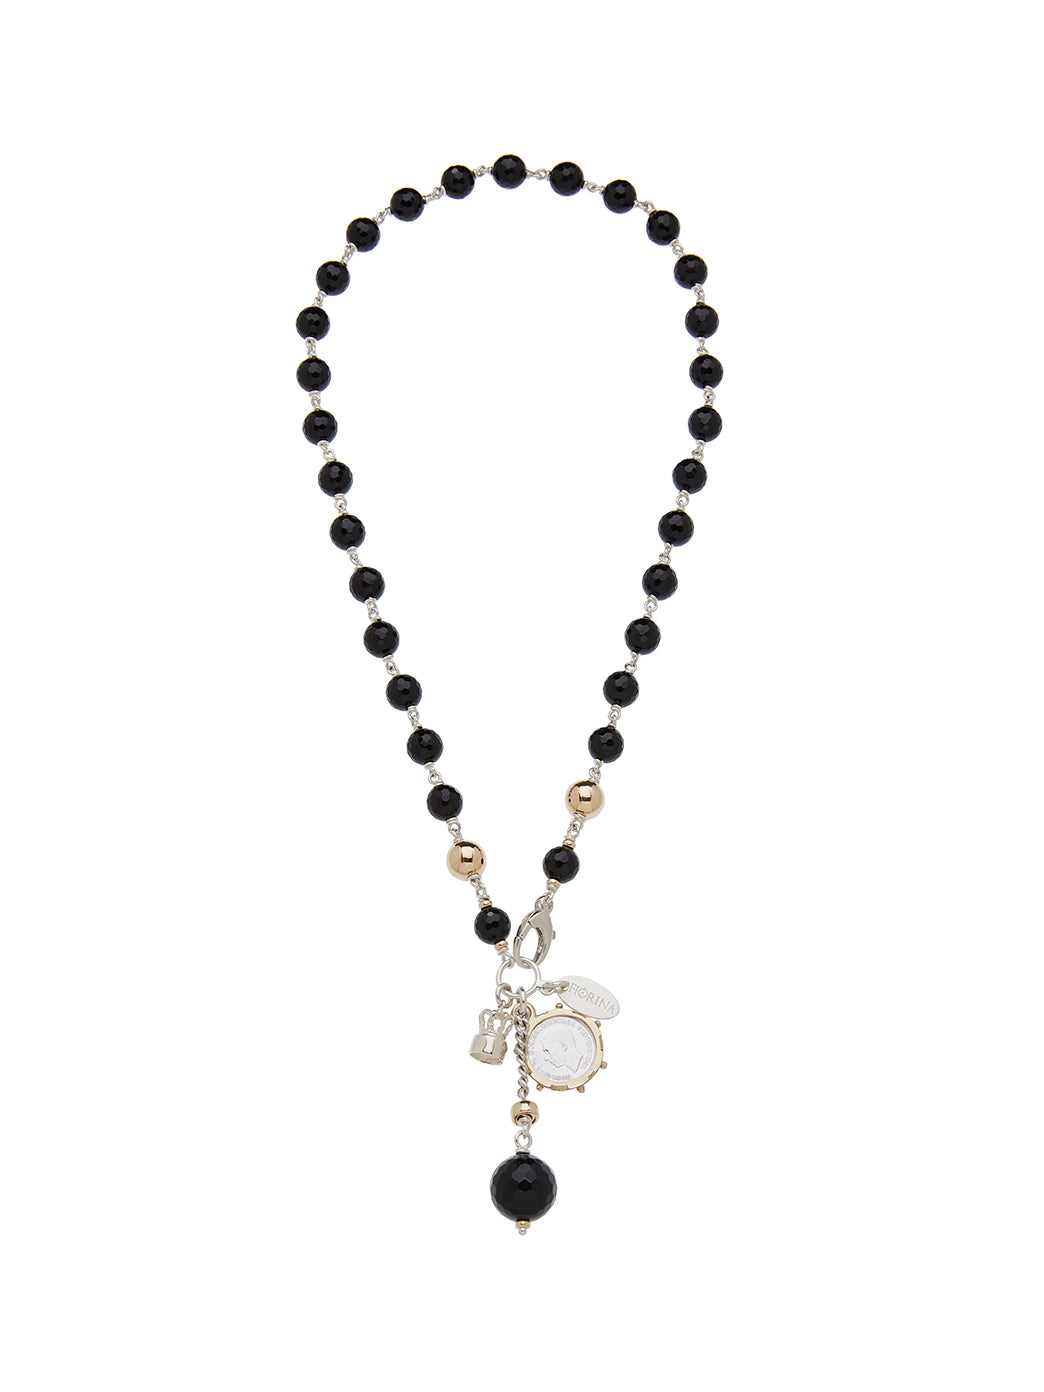 Fiorina Jewellery Pearlina Necklace Black Onyx